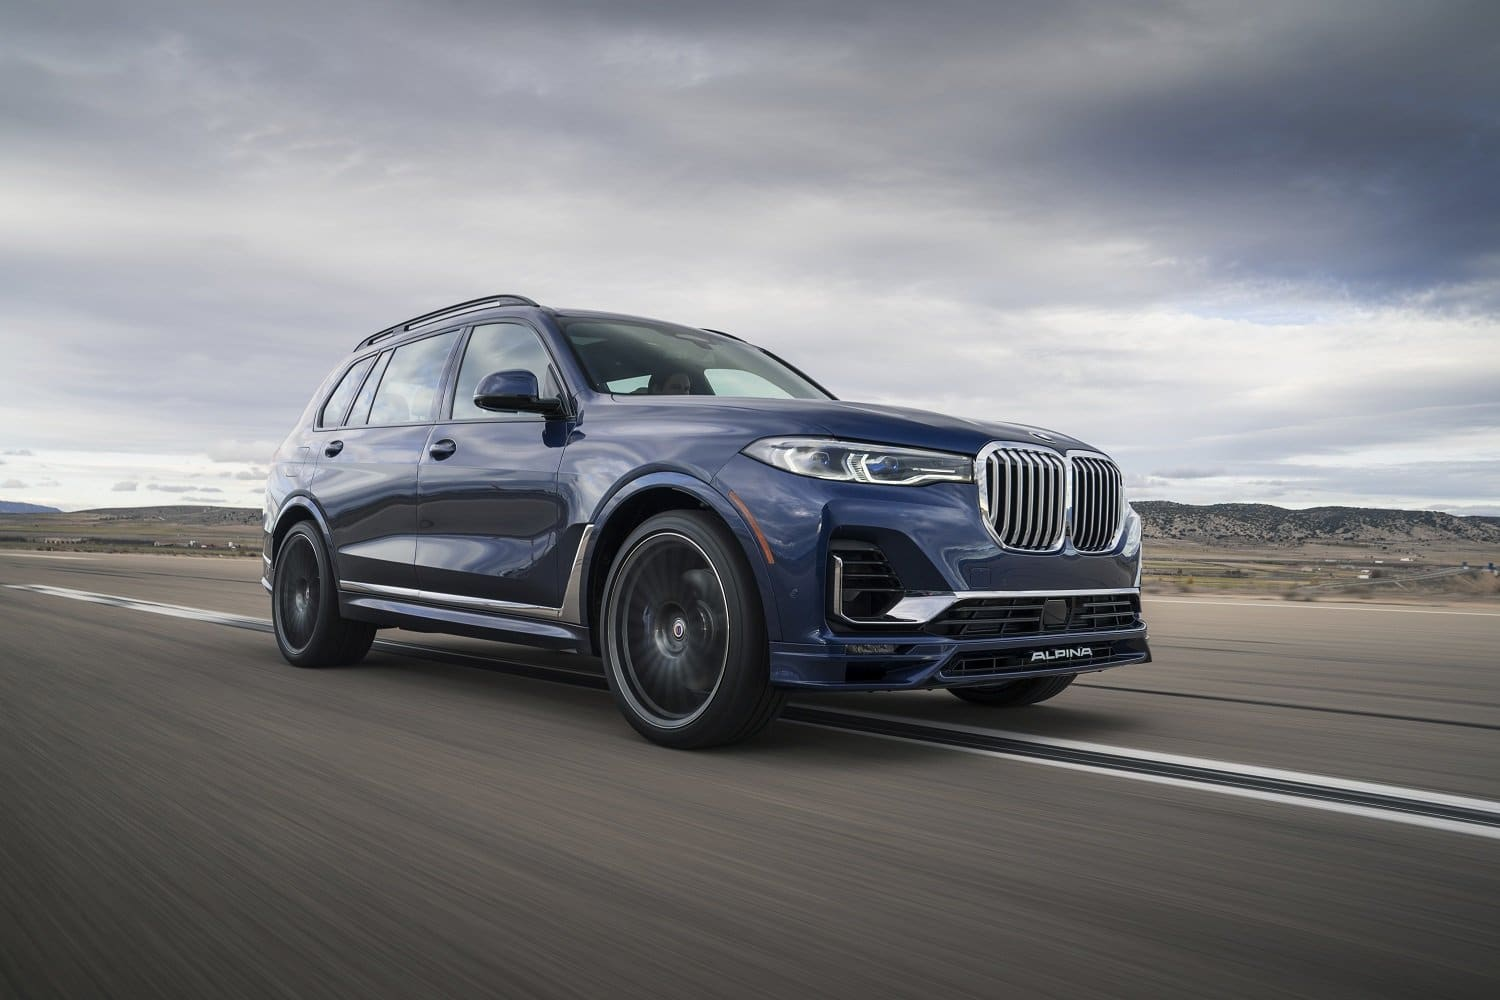 alpina launches new pinnacle large suv model  the xb7